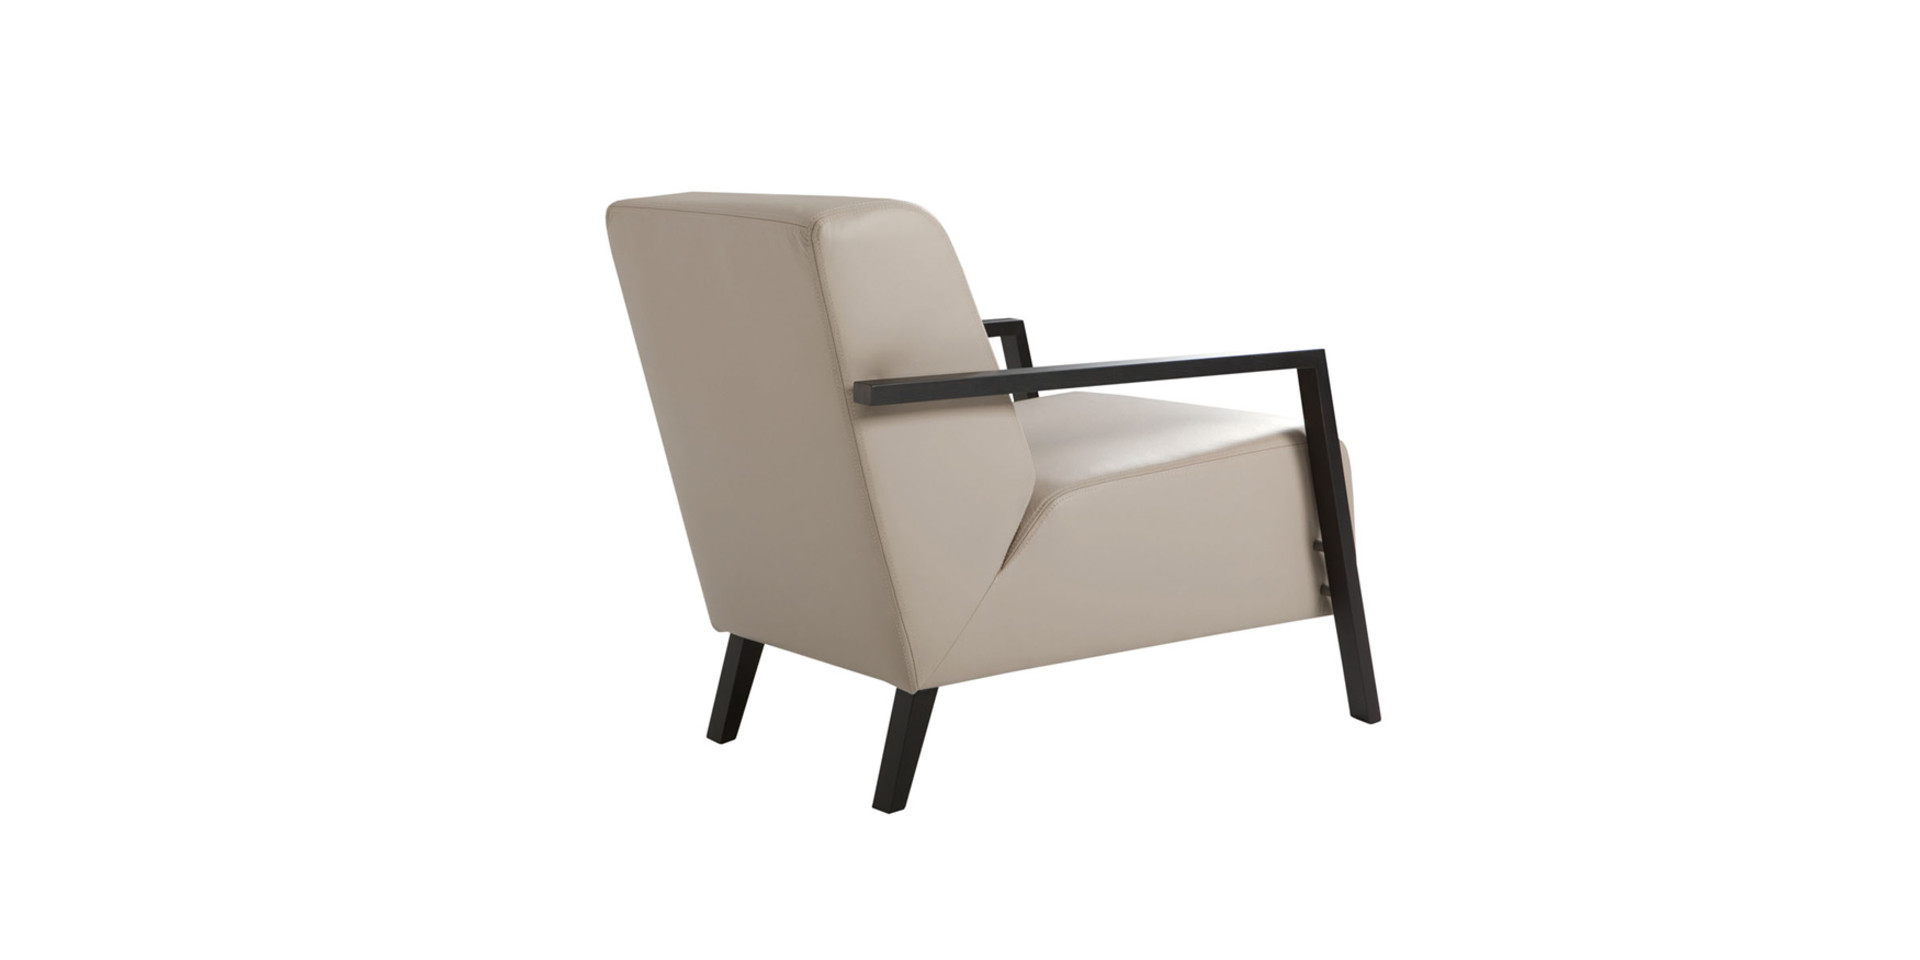 sits-foxi-fauteuil-armchair_oasi_beige_5